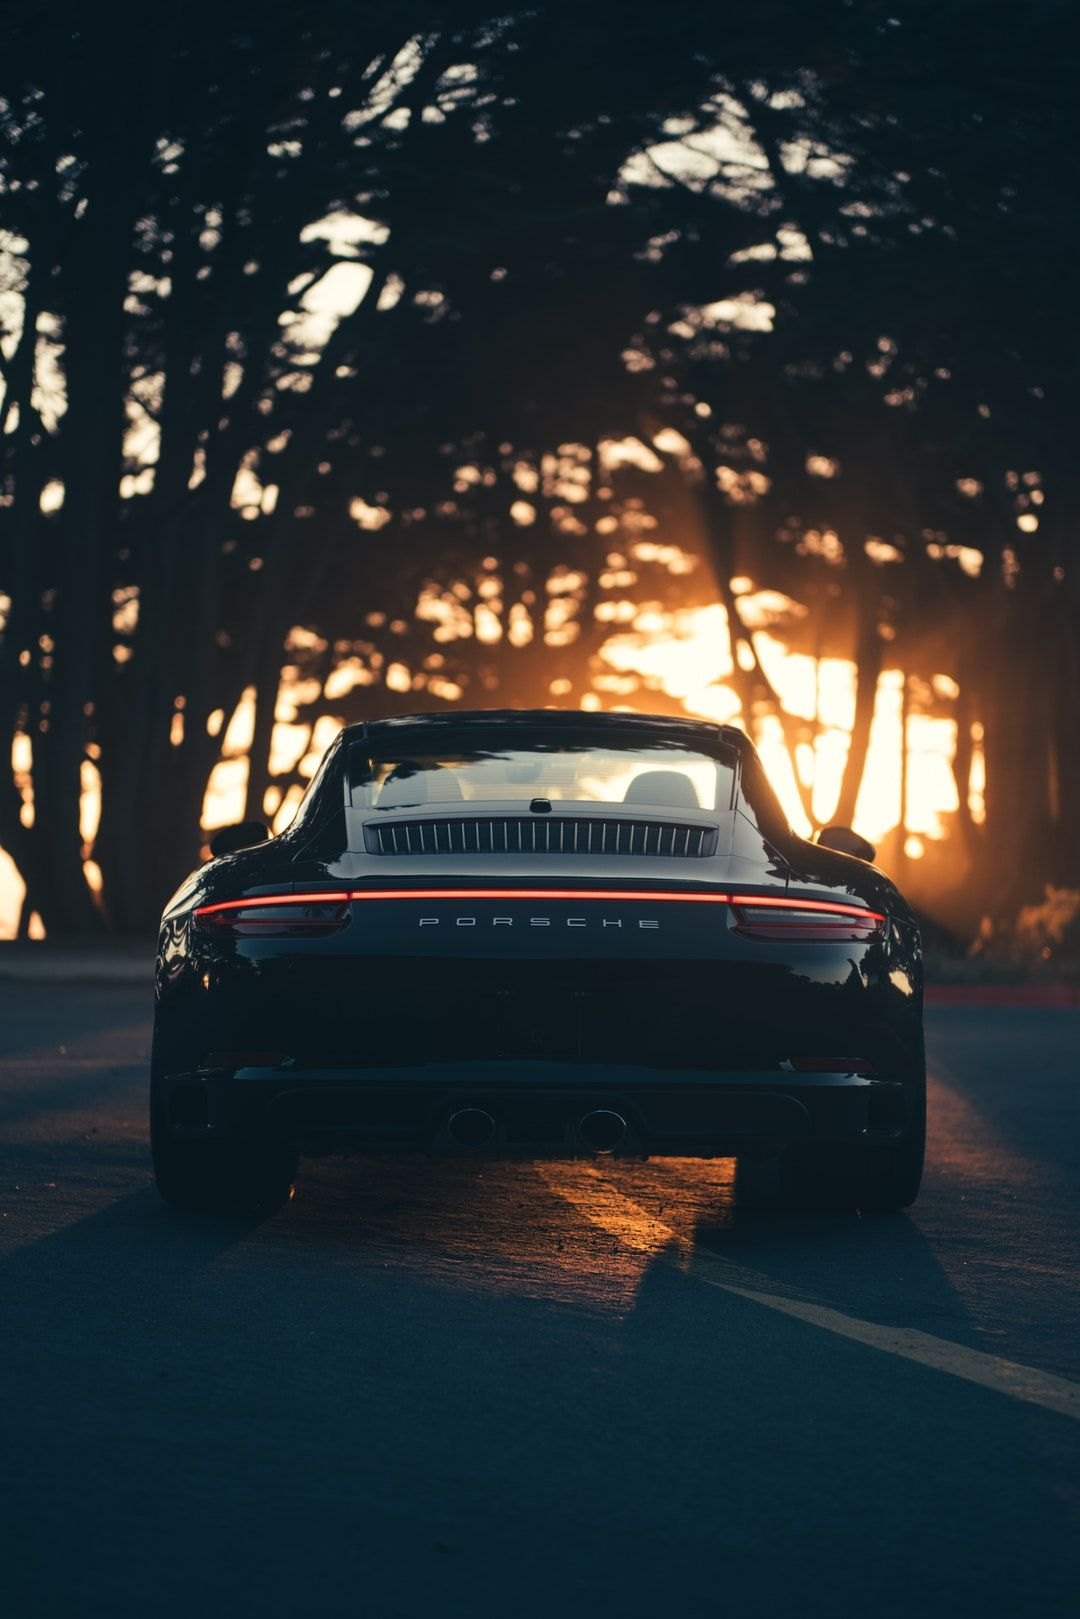 Download This Free Hd Photo Of Sunset Car Black And Carrera By